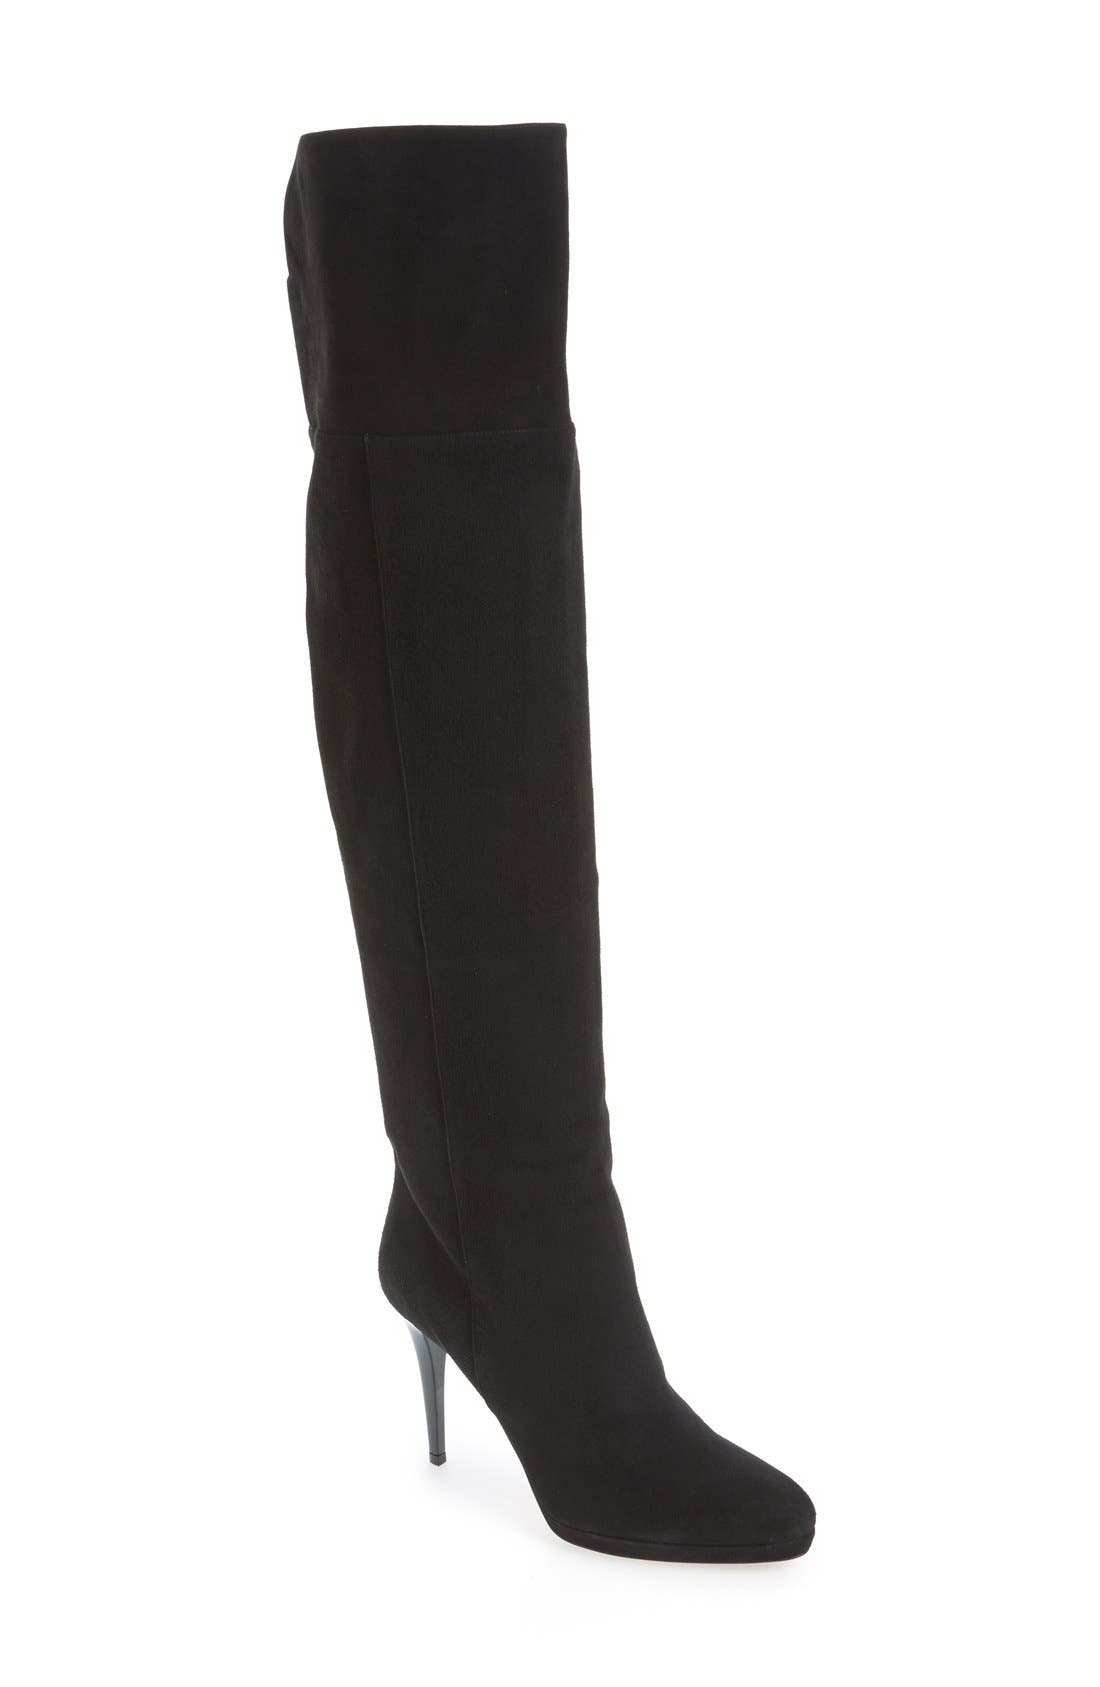 Main Image - Jimmy Choo Over the Knee Boot (Women)